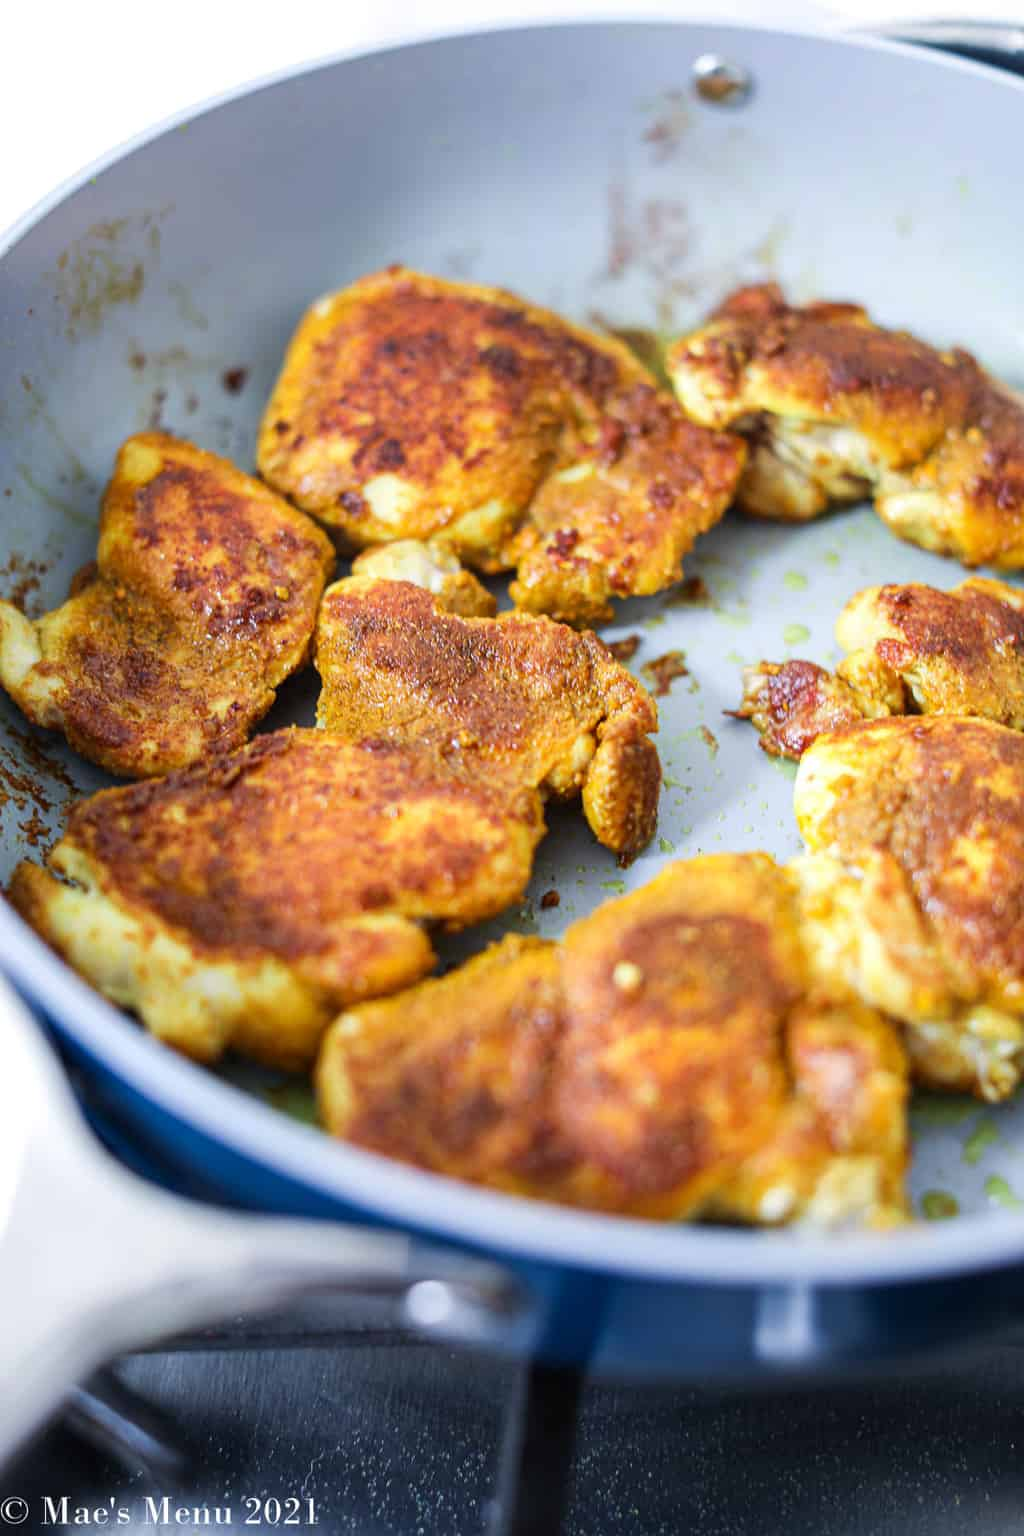 Turmeric rubbed chicken cooking in a non-stick pan